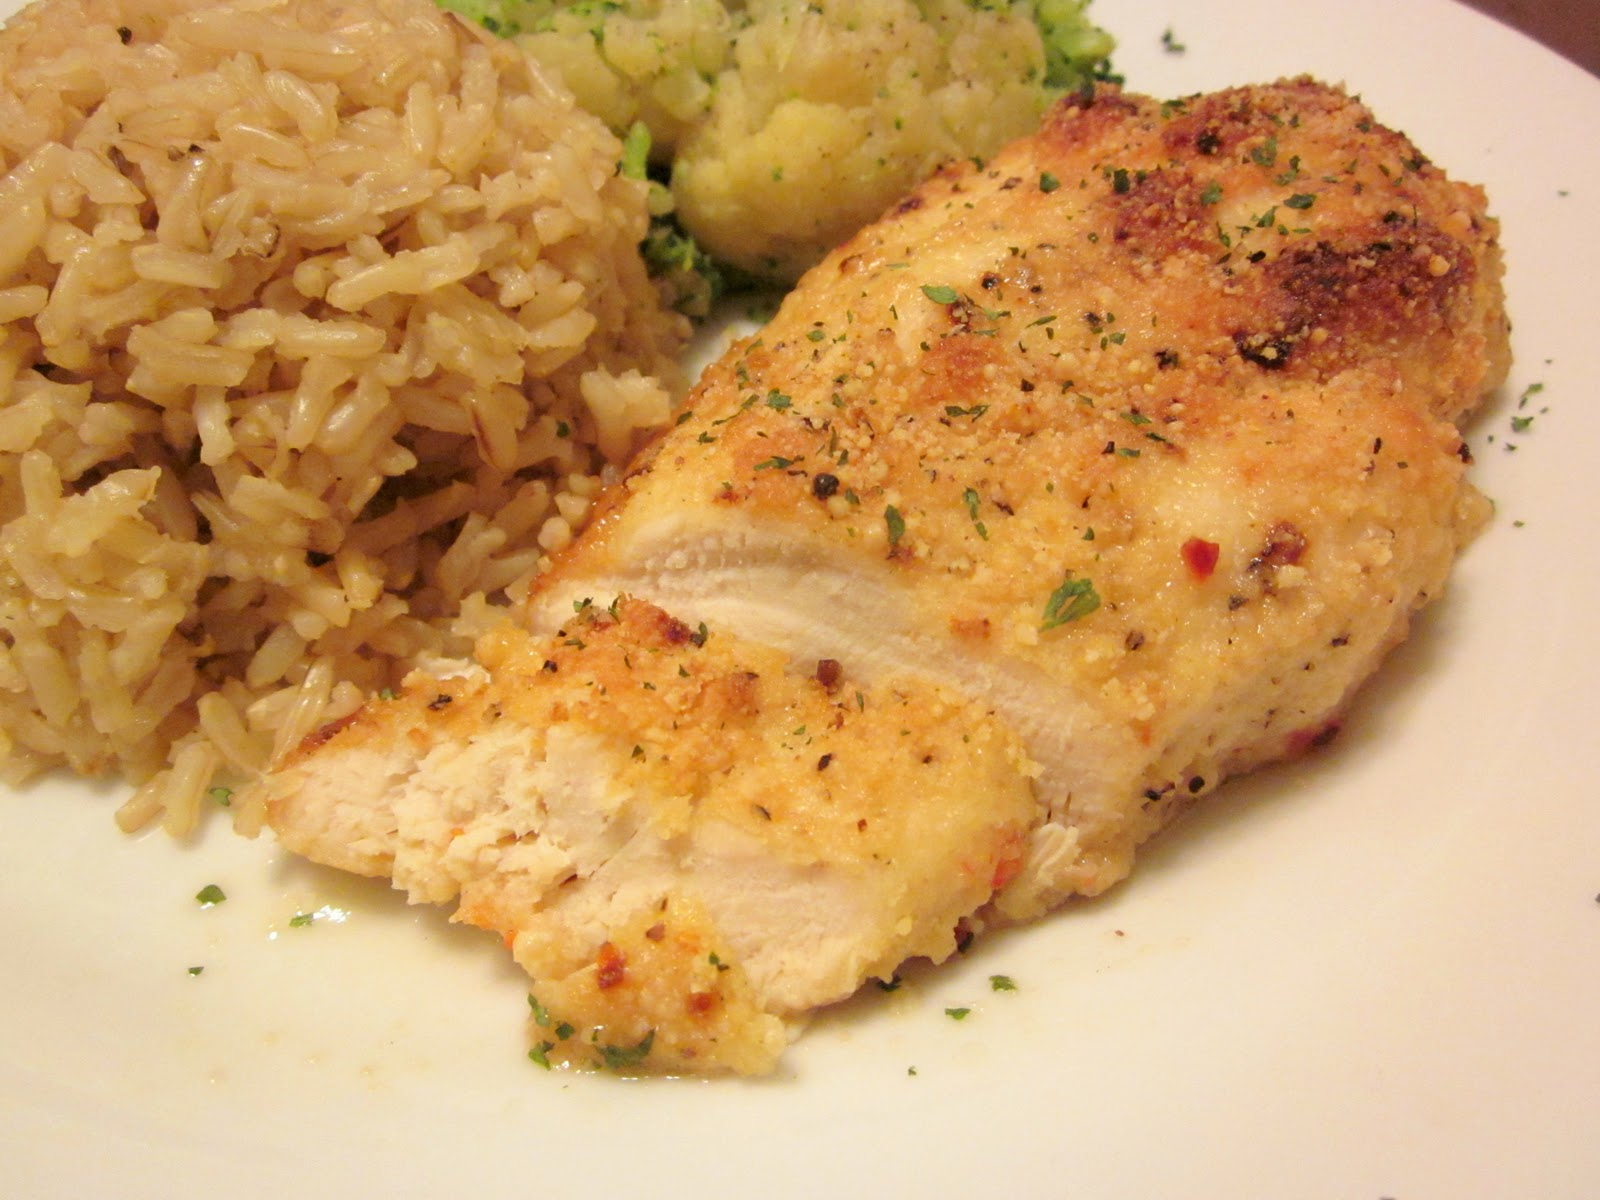 The Thinking Blonde: Super Easy Recipe: Baked Parmesan Garlic Chicken